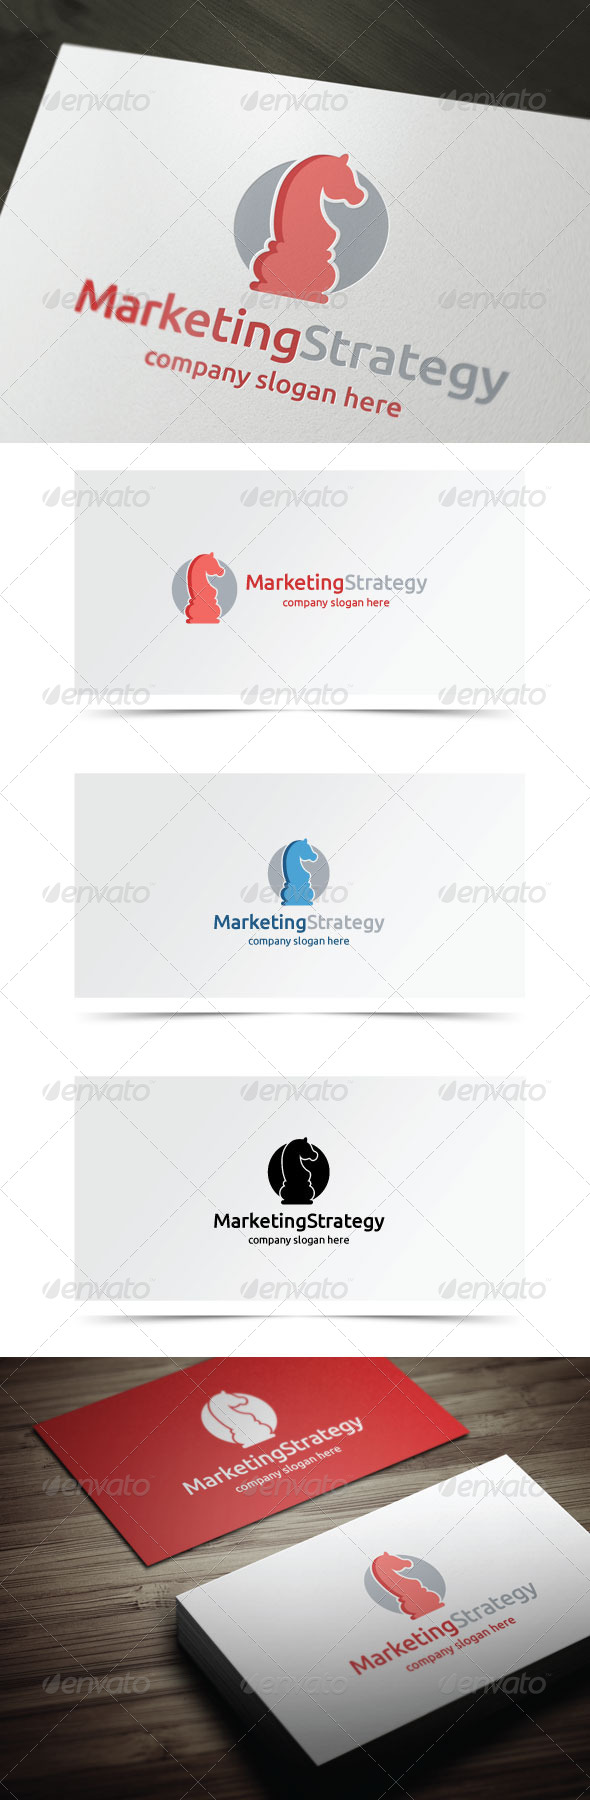 GraphicRiver Marketing Strategy 7784787